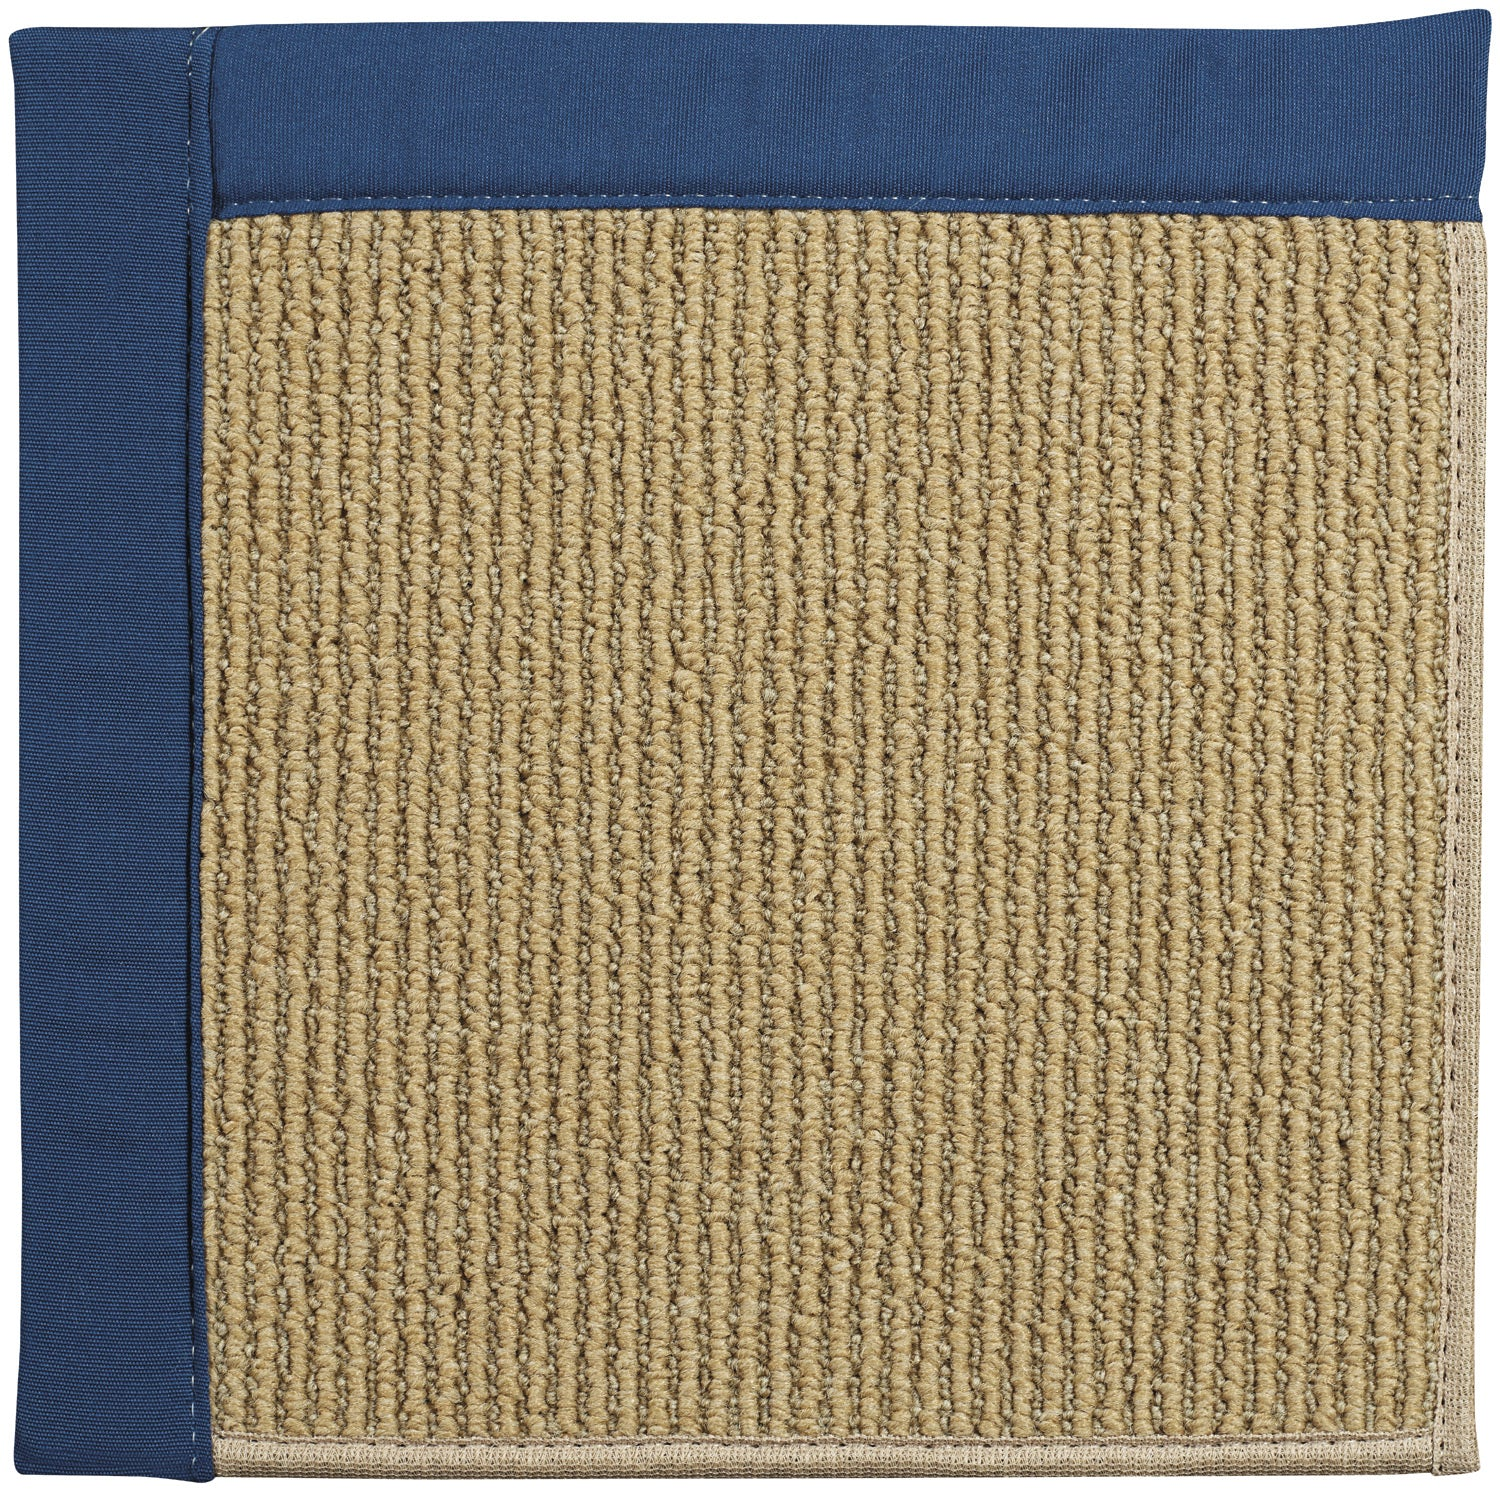 Capel Beachfront Shore 2036 Blue 477 Area Rug main image